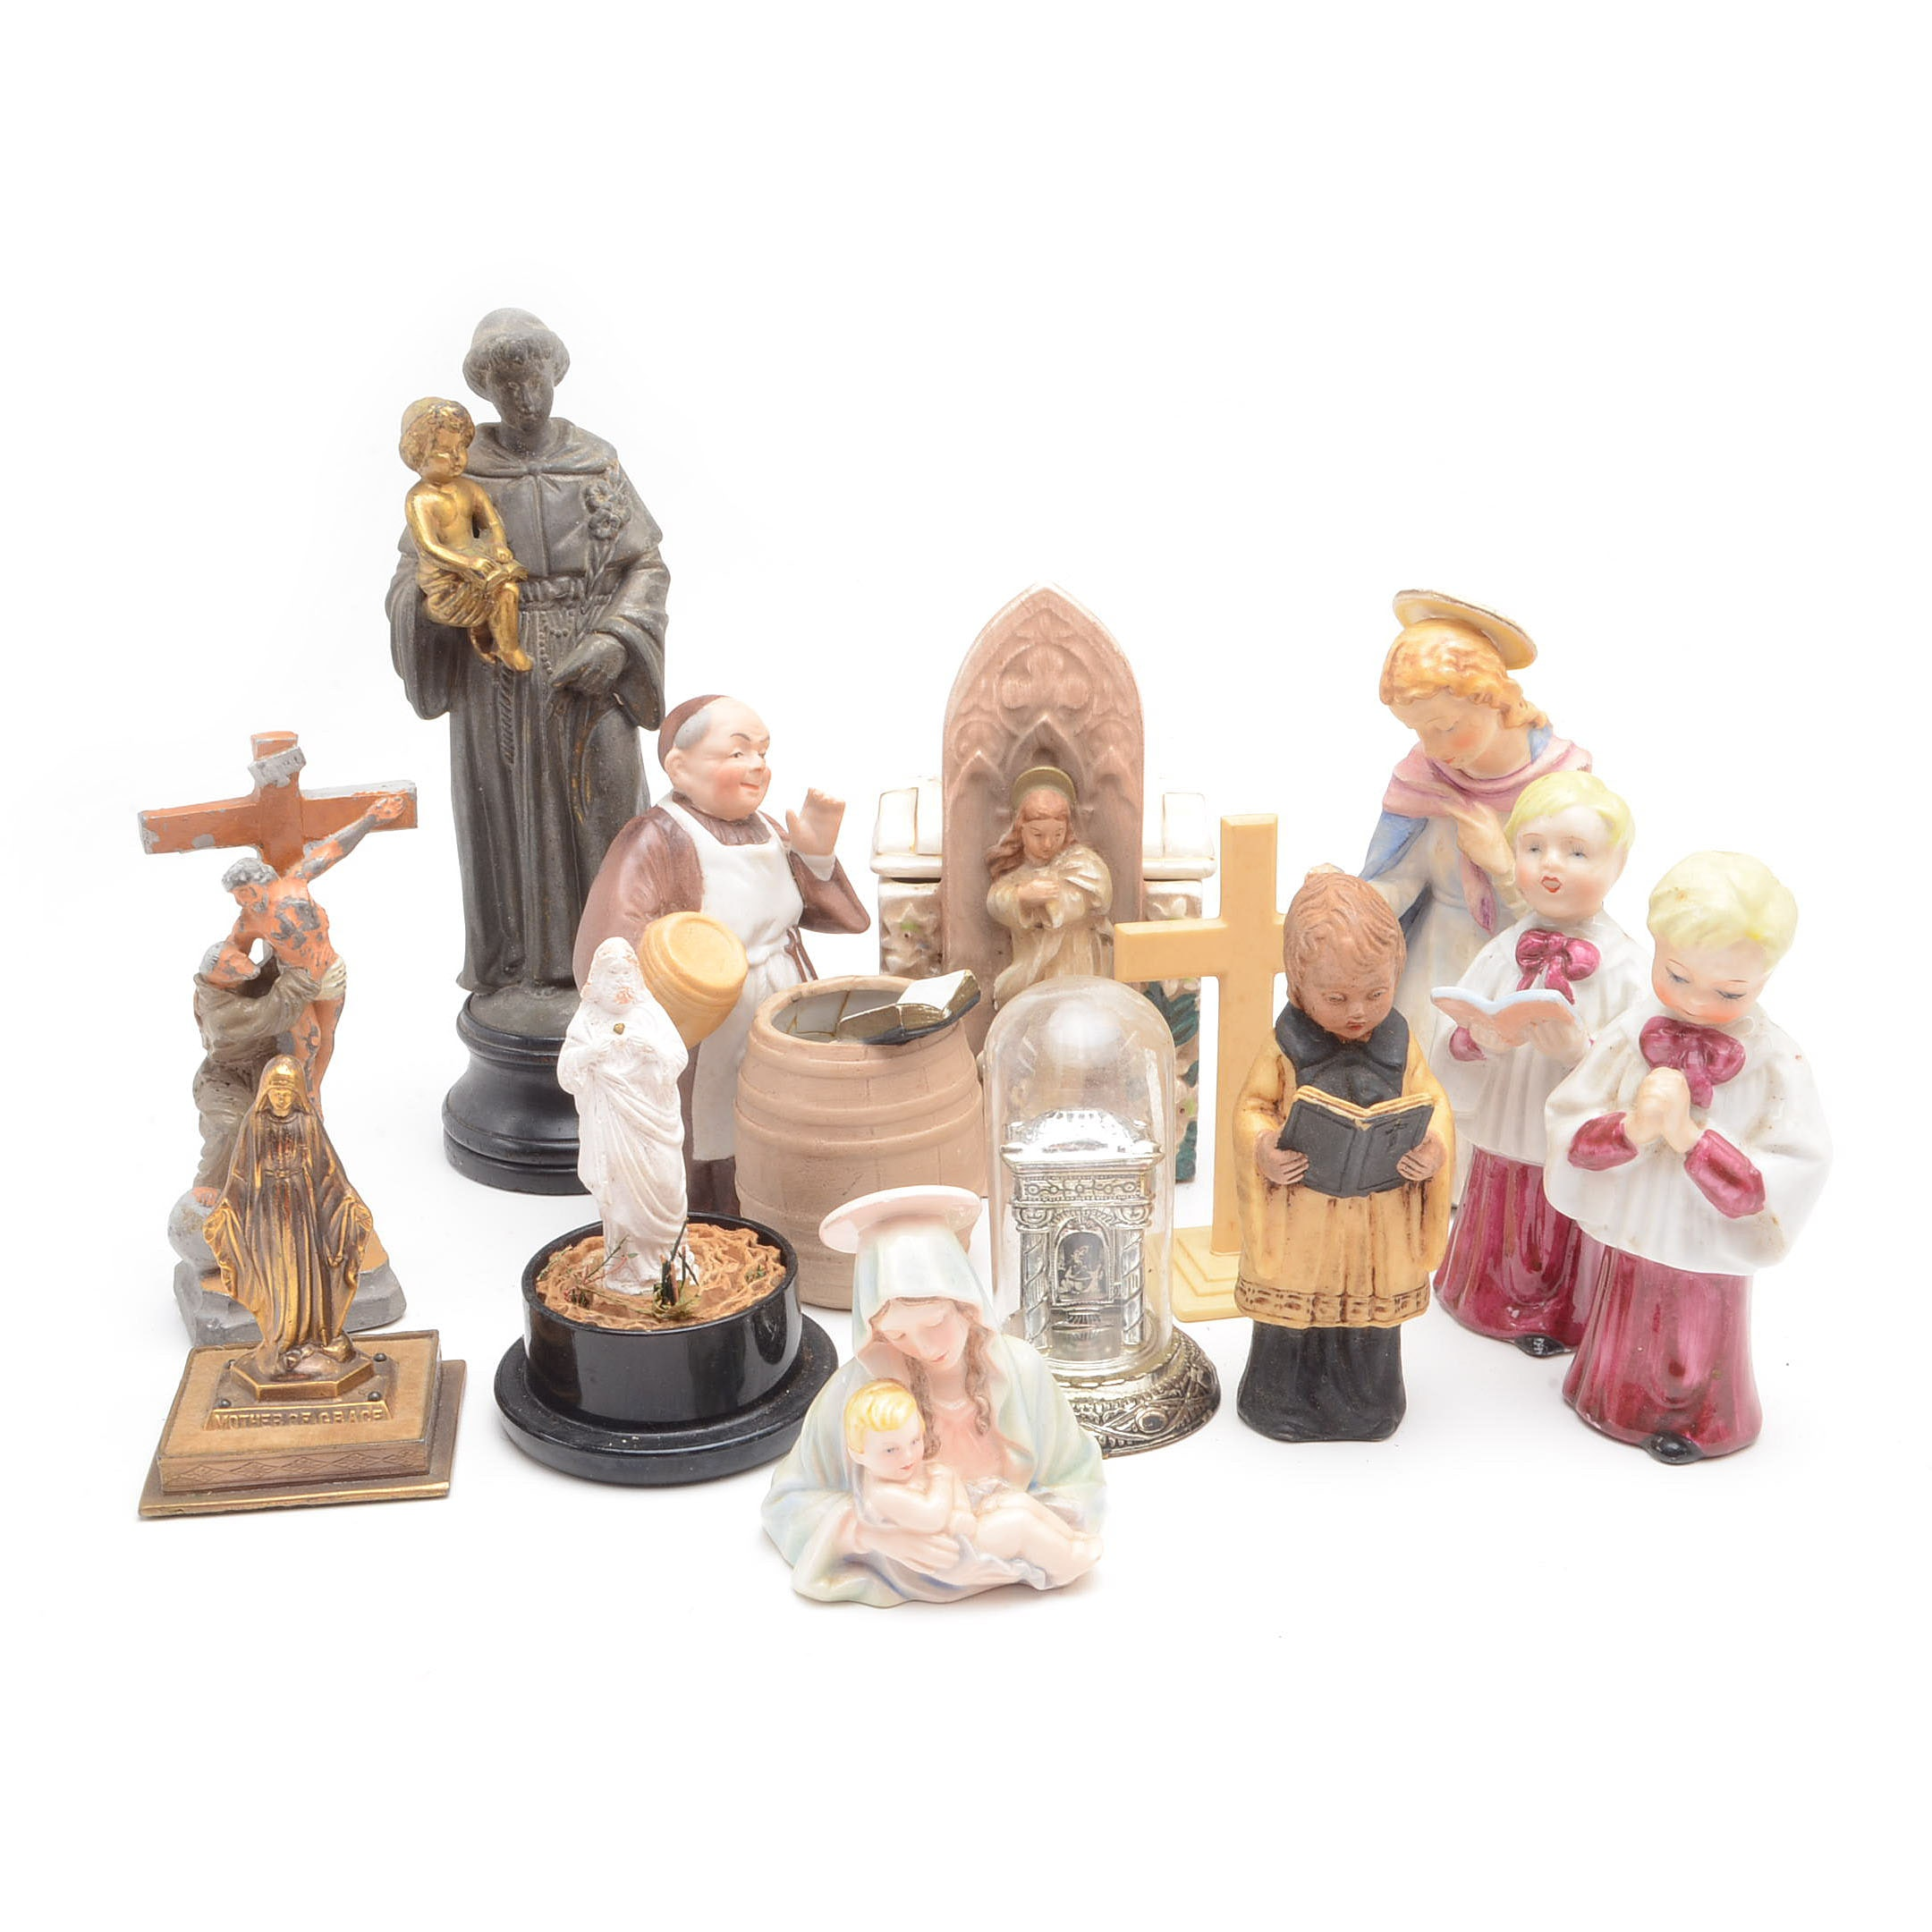 Collection of Religious Figurines